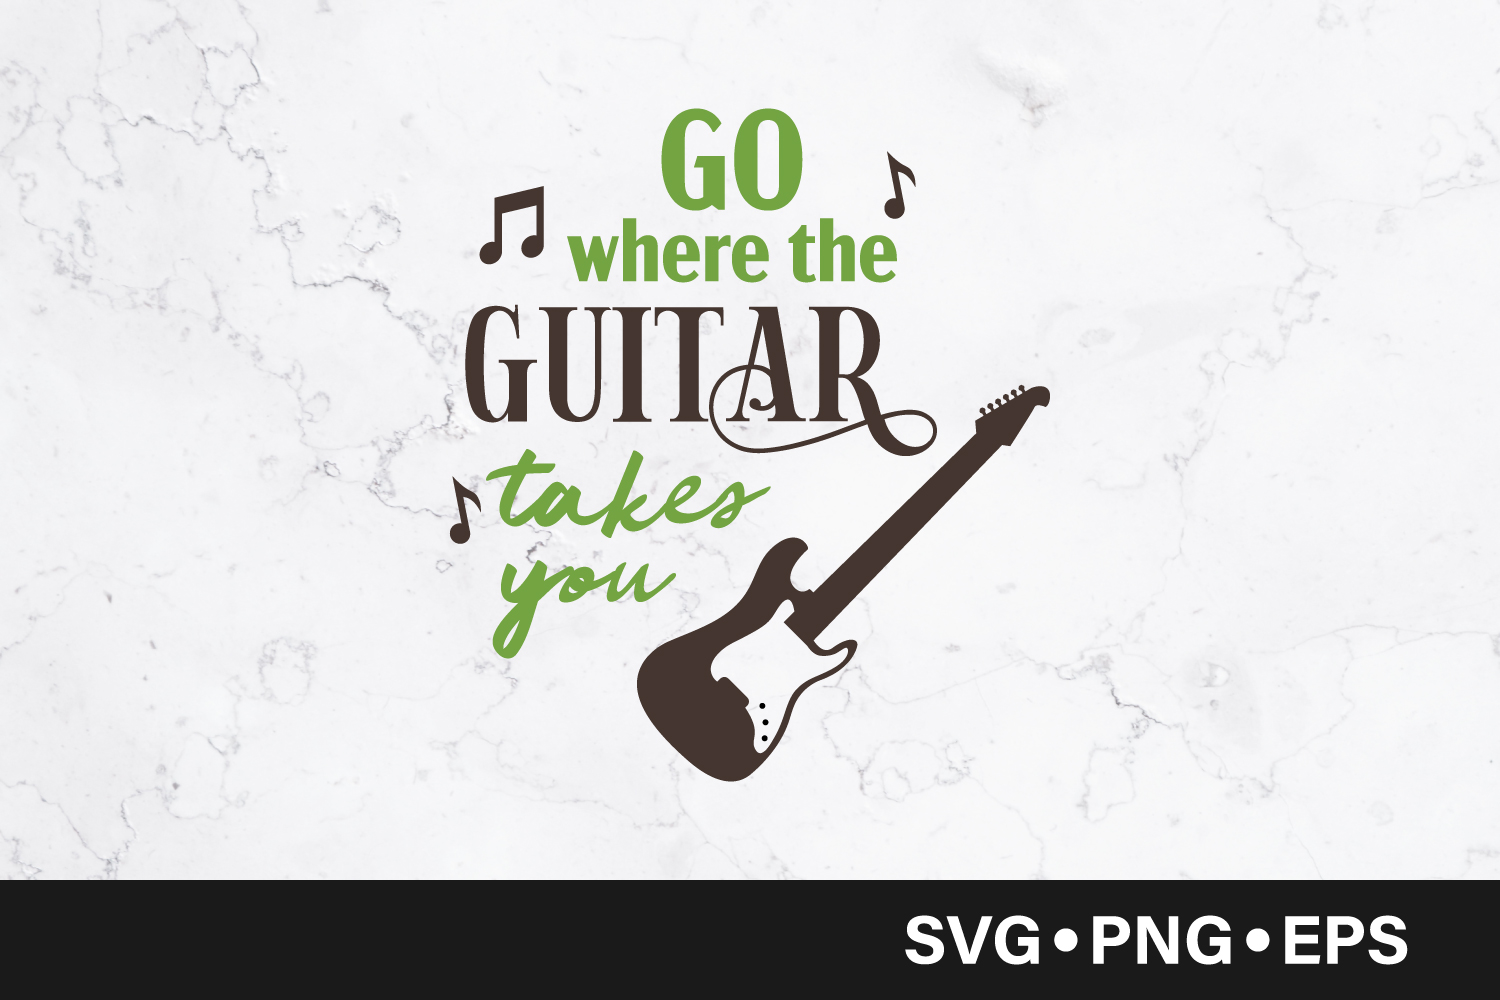 Download Free Go Where The Guitar Takes You Graphic By Vectorbundles for Cricut Explore, Silhouette and other cutting machines.